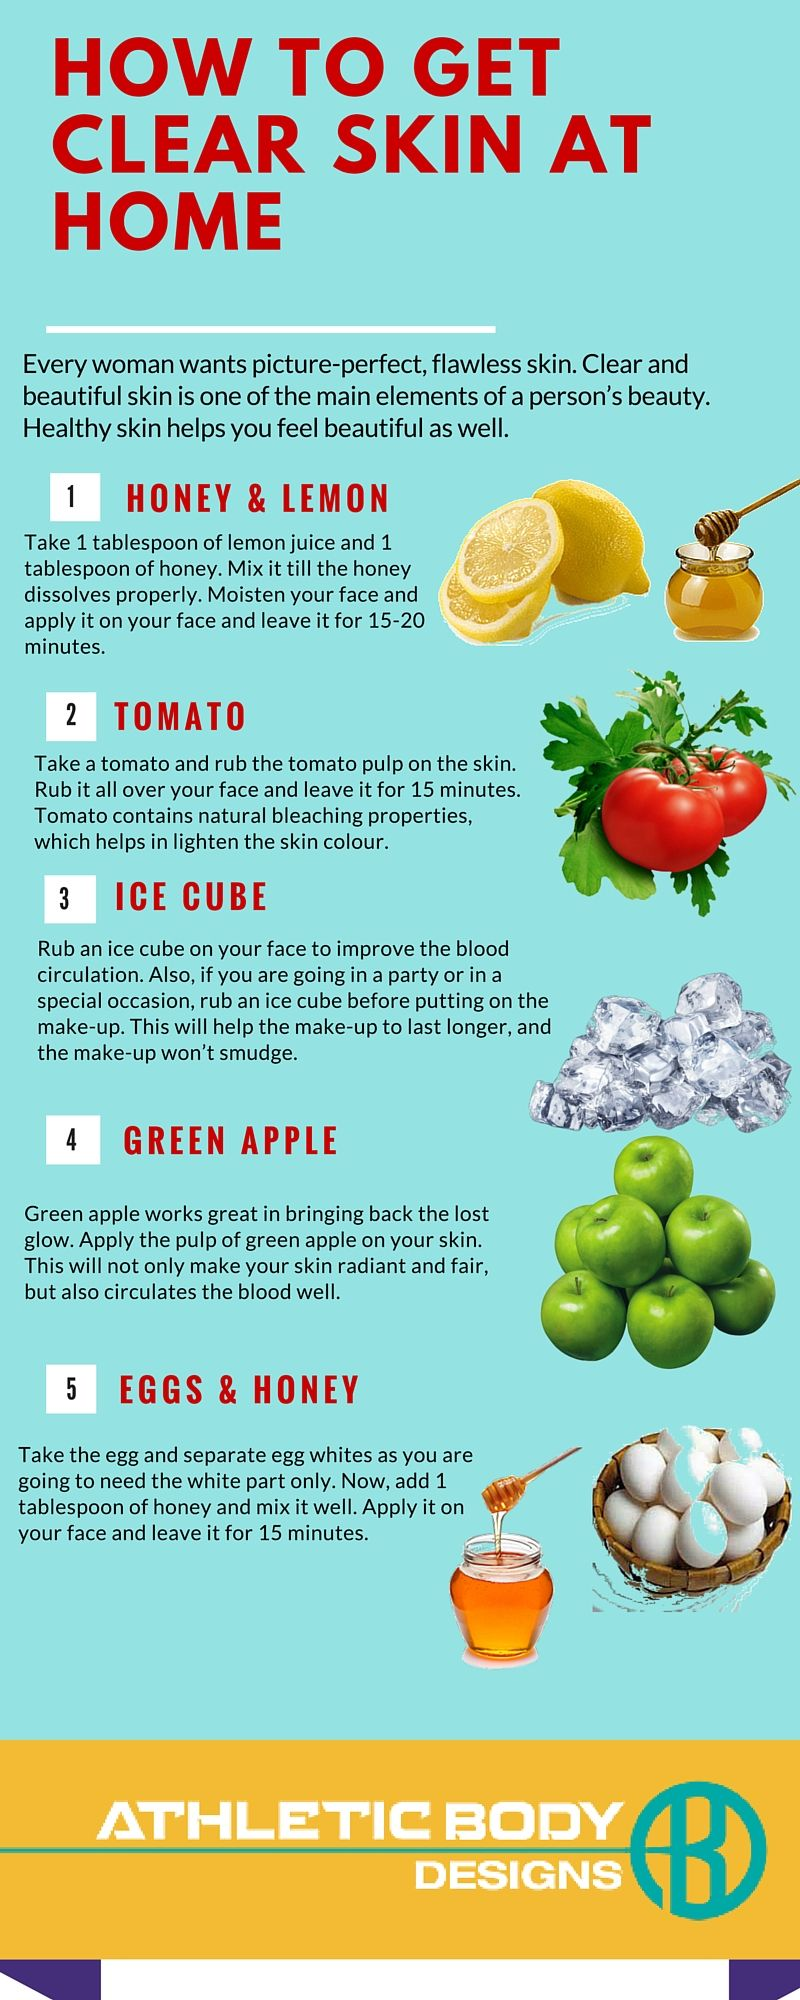 Every Woman Wants Picture Perfect Flawless Skin Clear And Beautiful Skin Is One Of The Main Elements Of A Person S B Flawless Skin Healthy Skin Skin Remedies